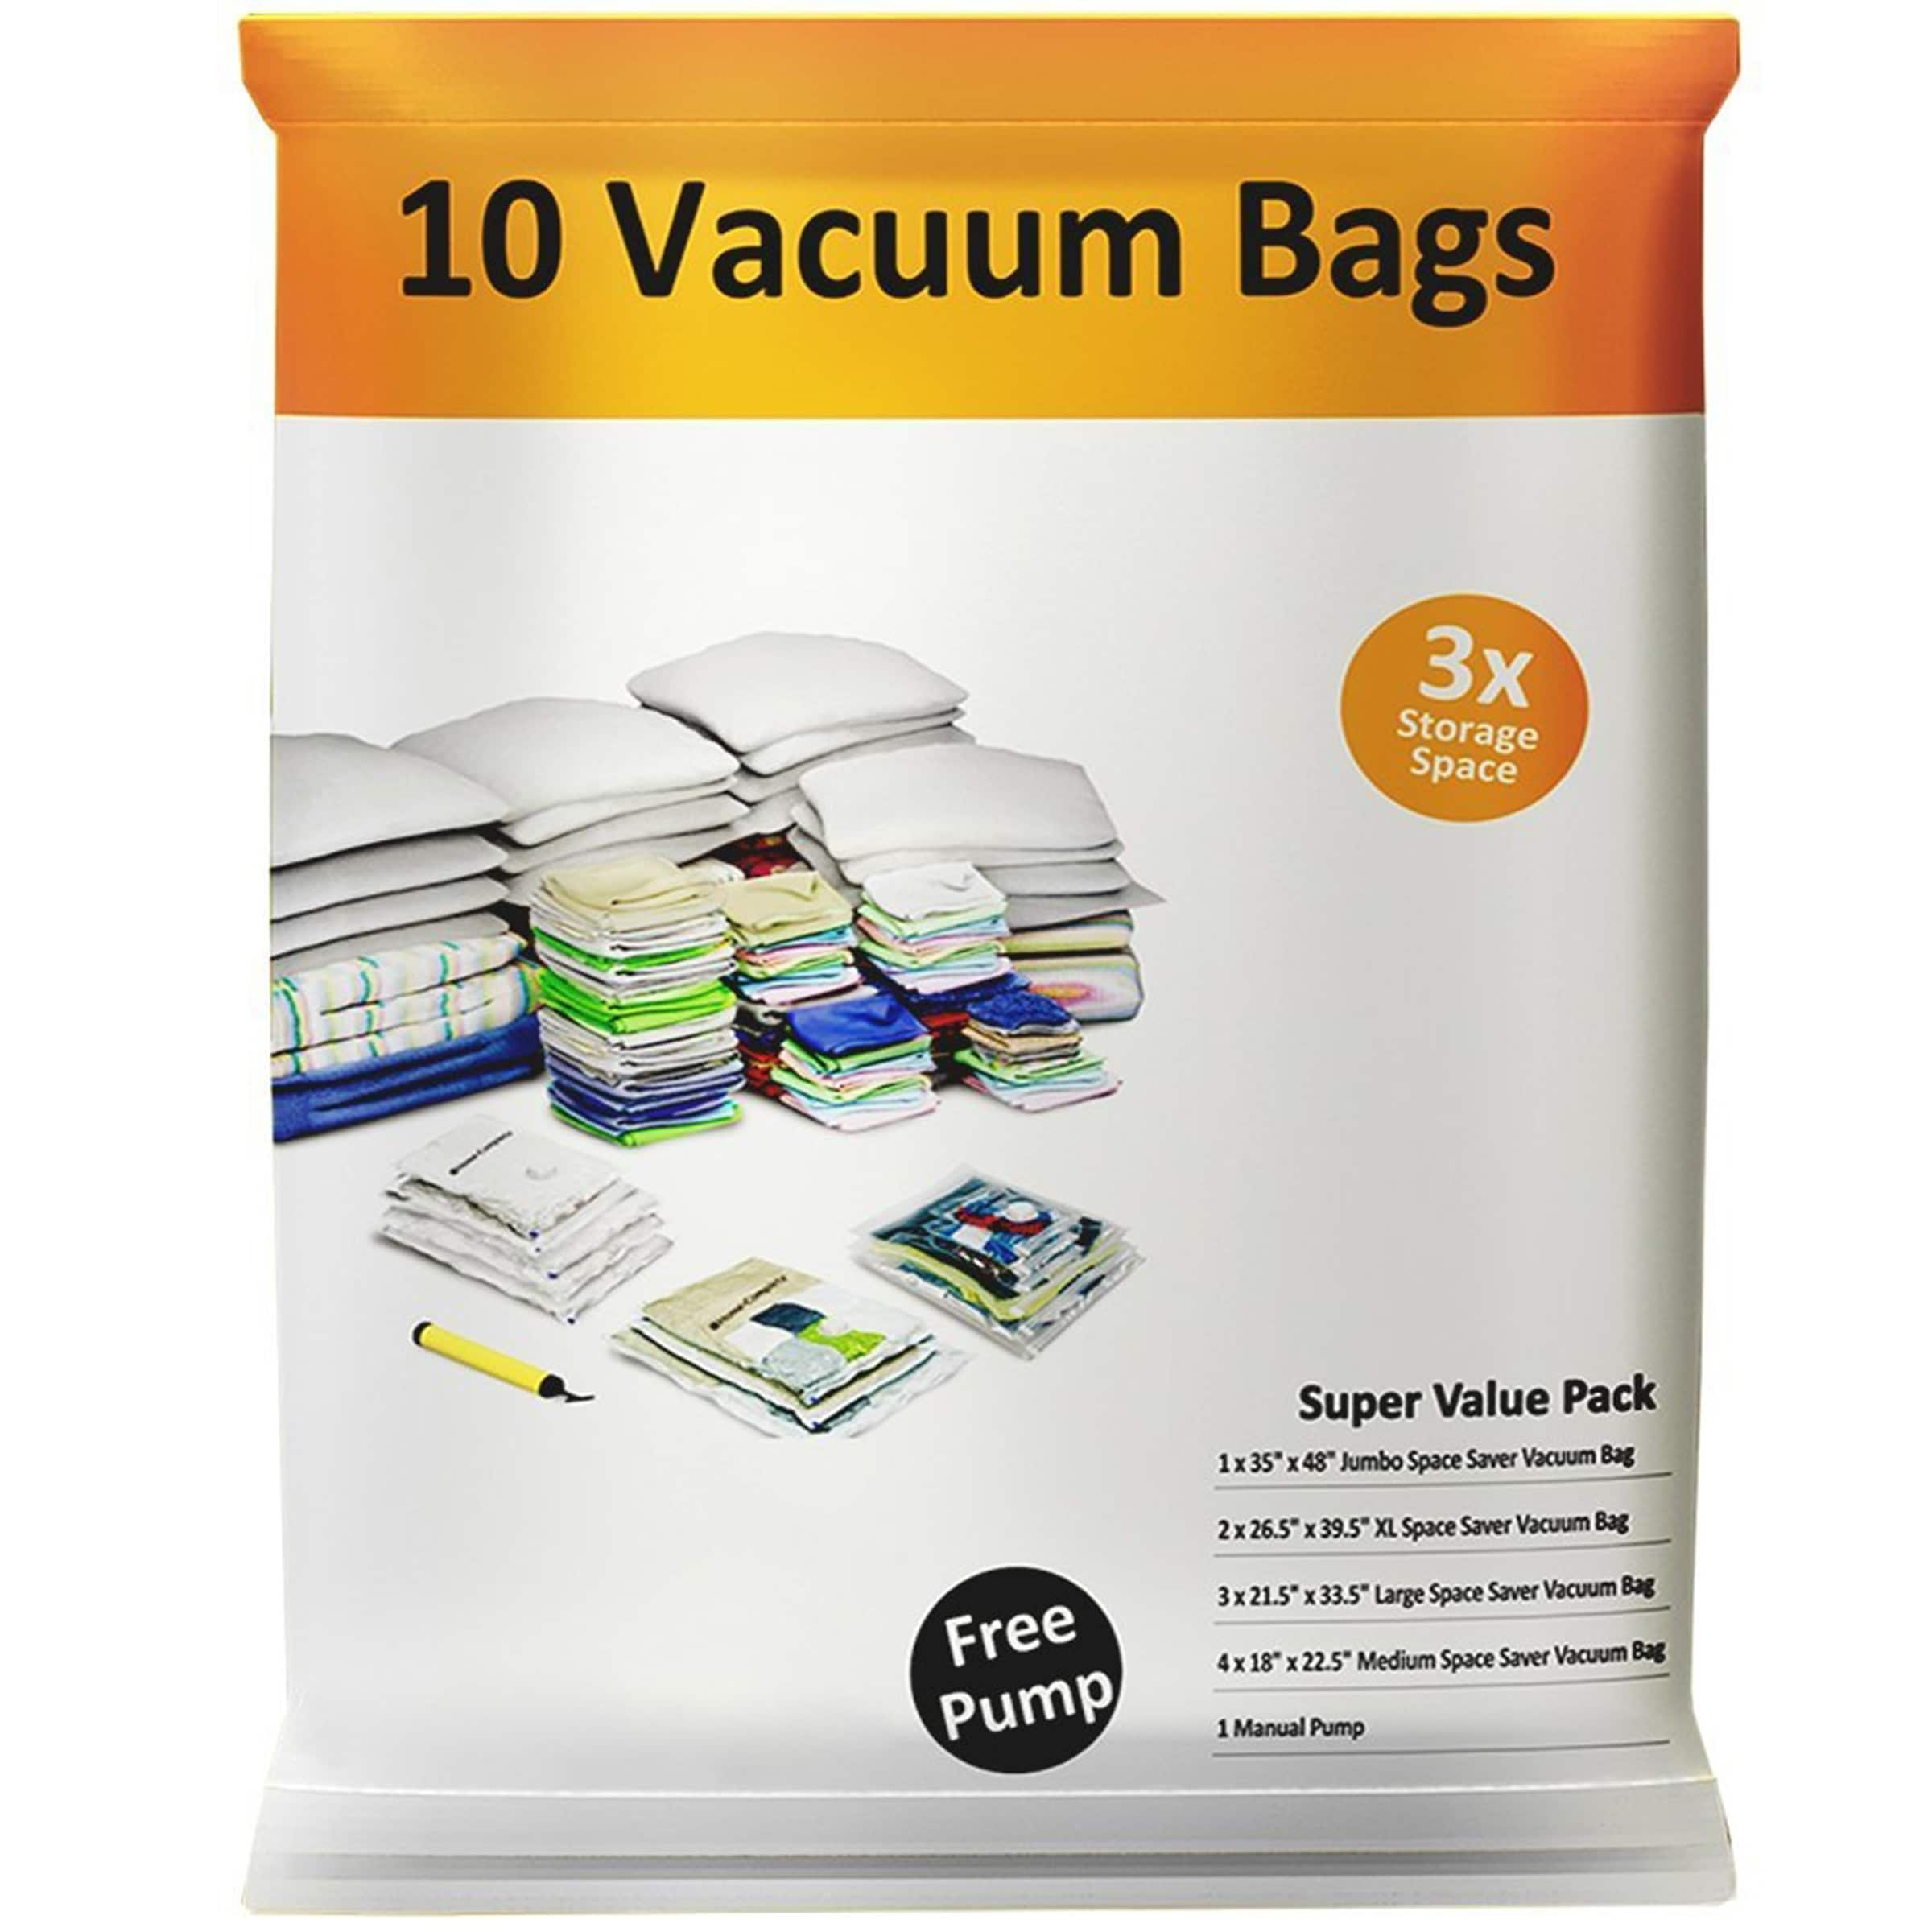 Vacuum Storage Bags E Saving Air Compression On Free Shipping Orders Over 45 20718770